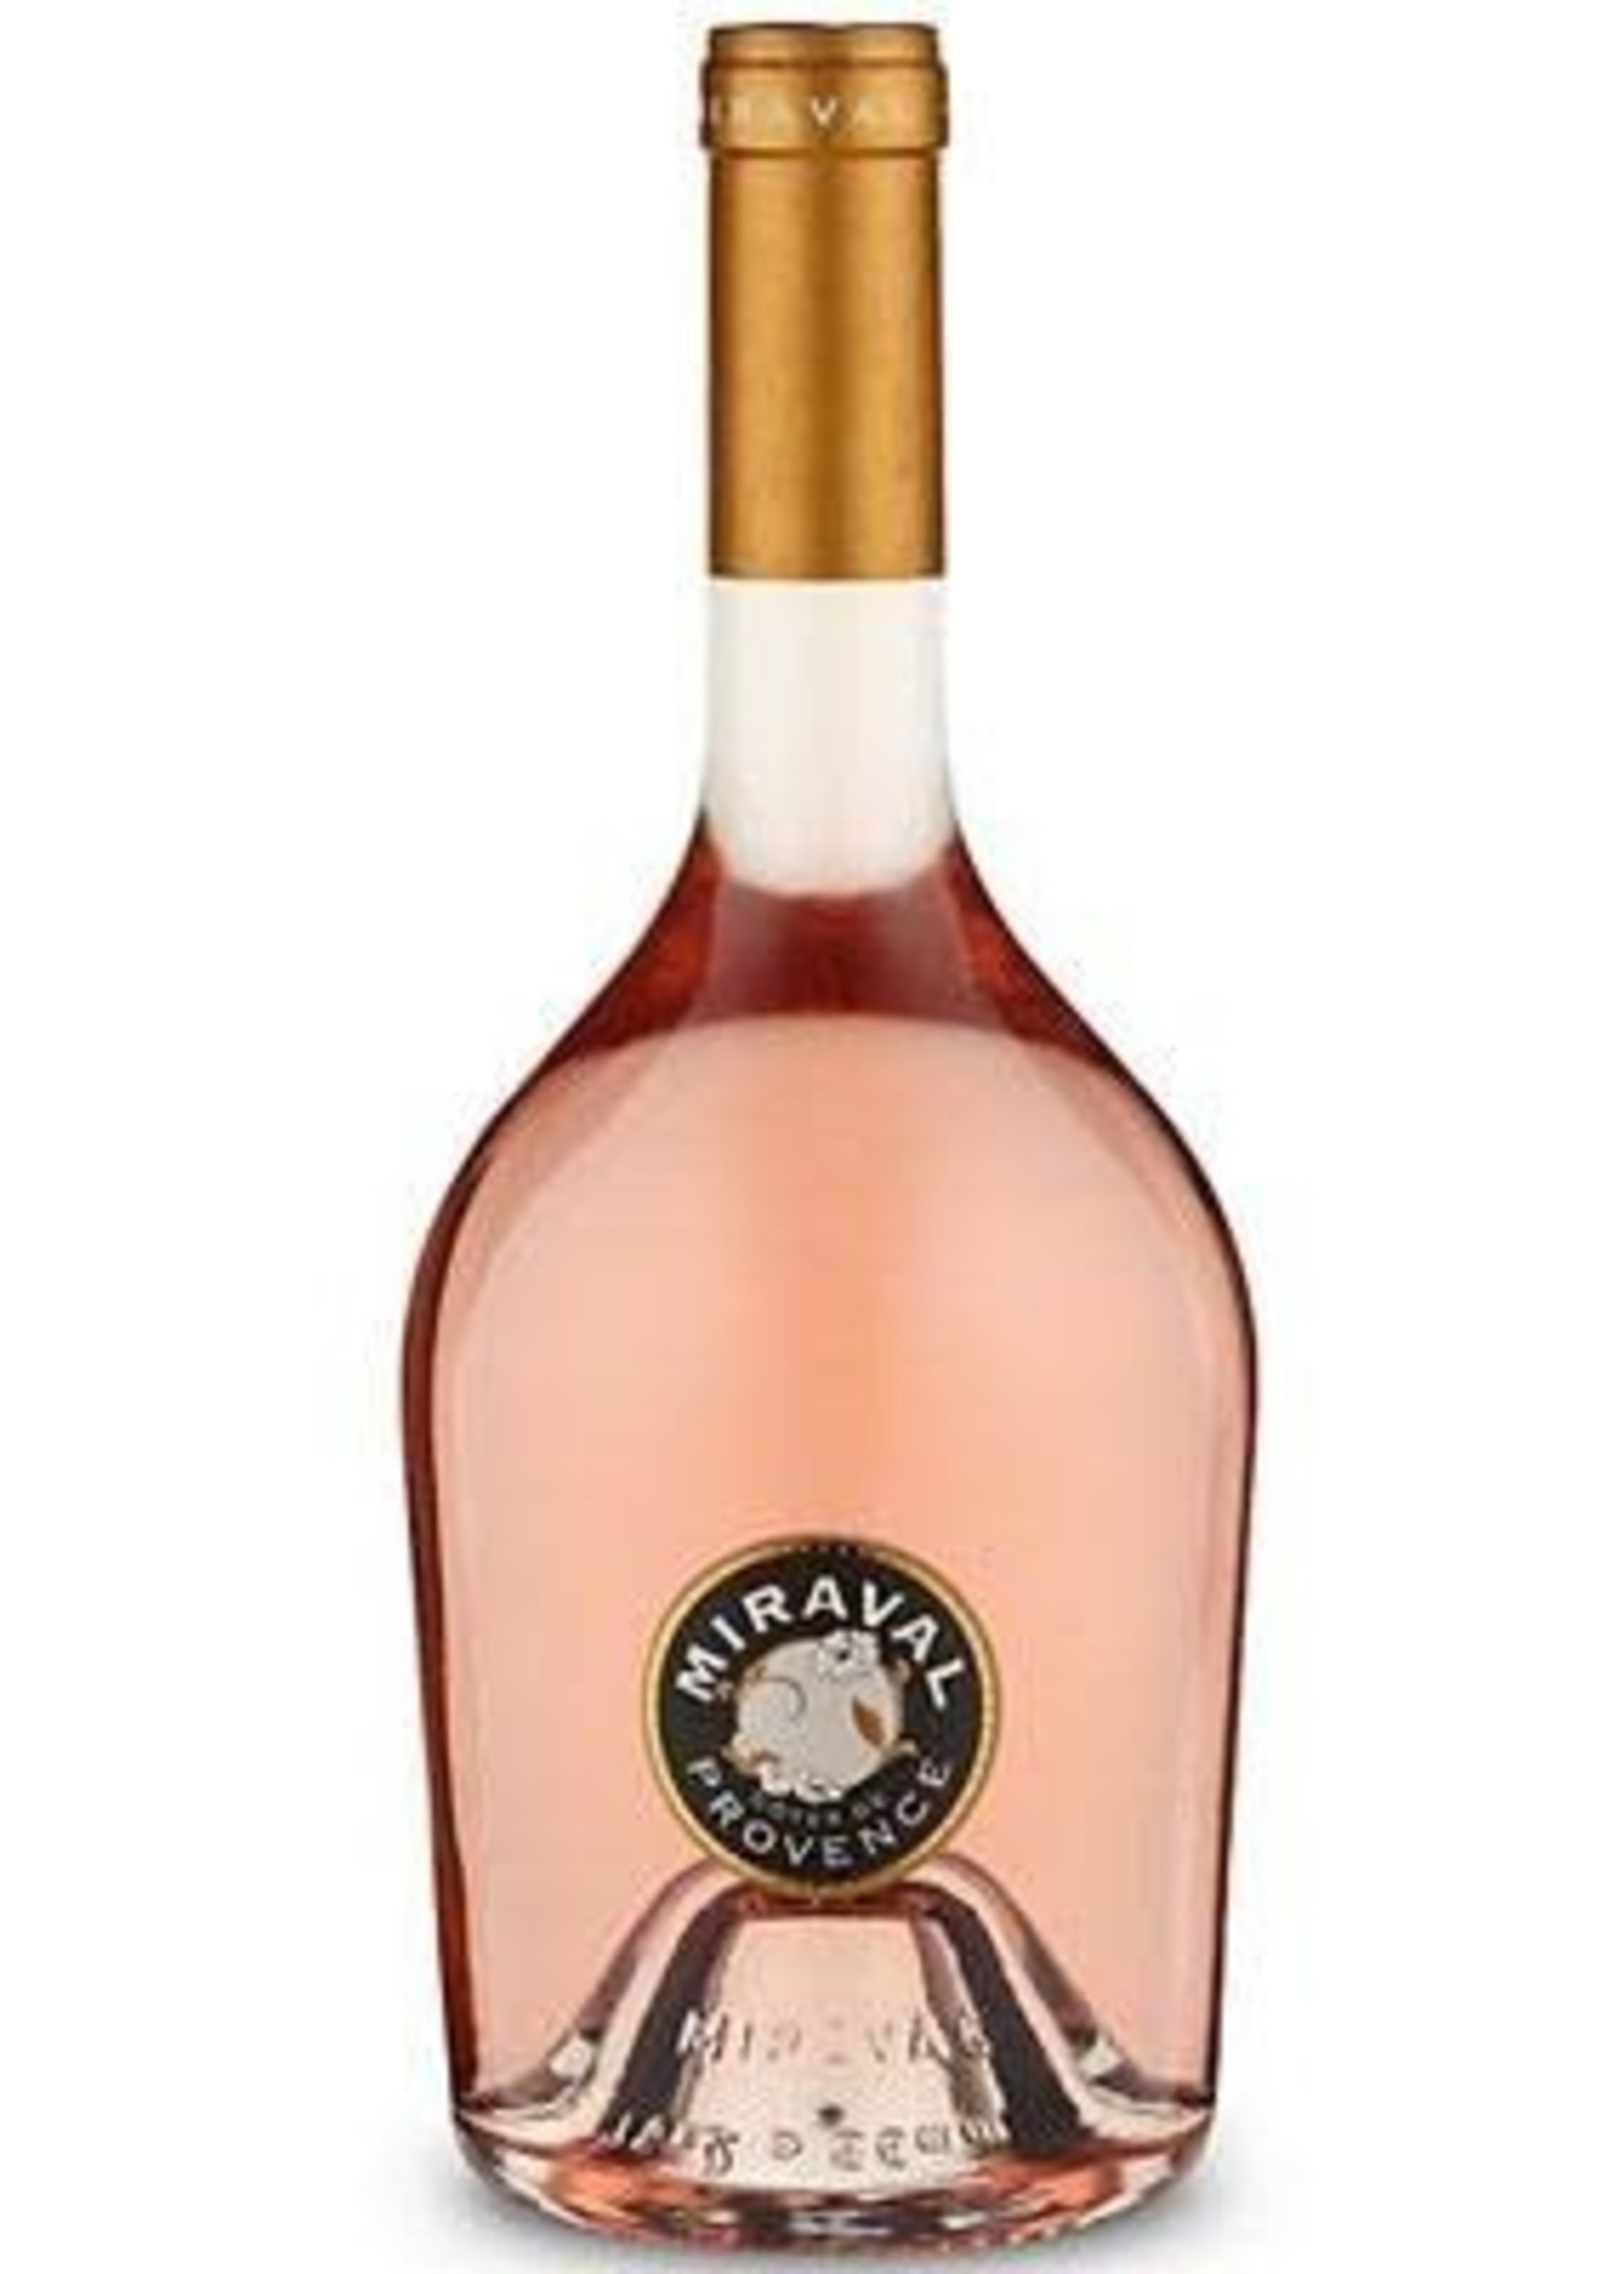 Miraval Rose, Provence, France